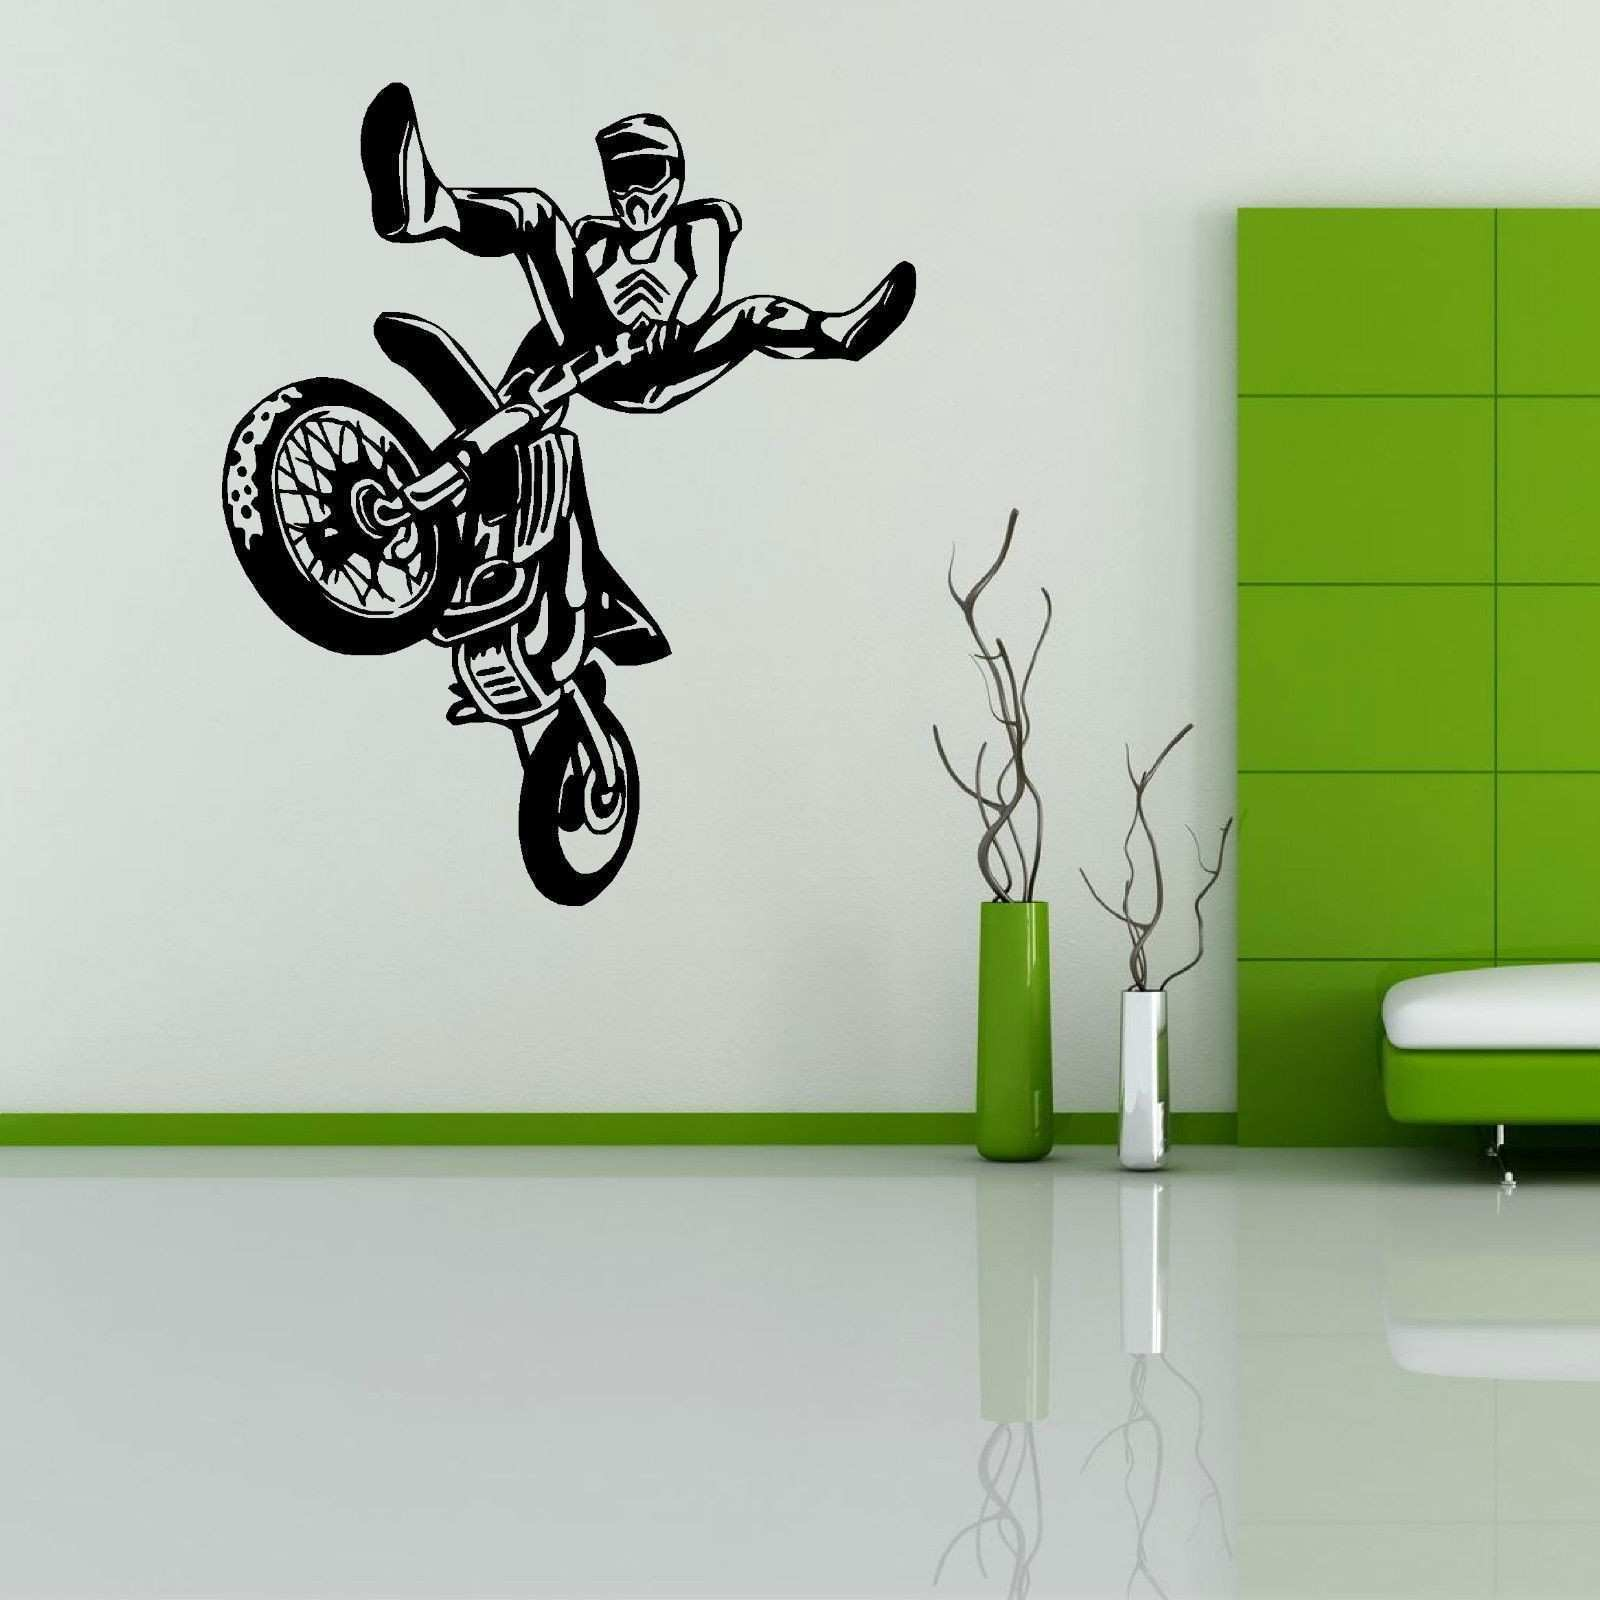 Motocross Wall Sticker Bedroom Boy Room Dirt Bike Dirtbike Moto Bike